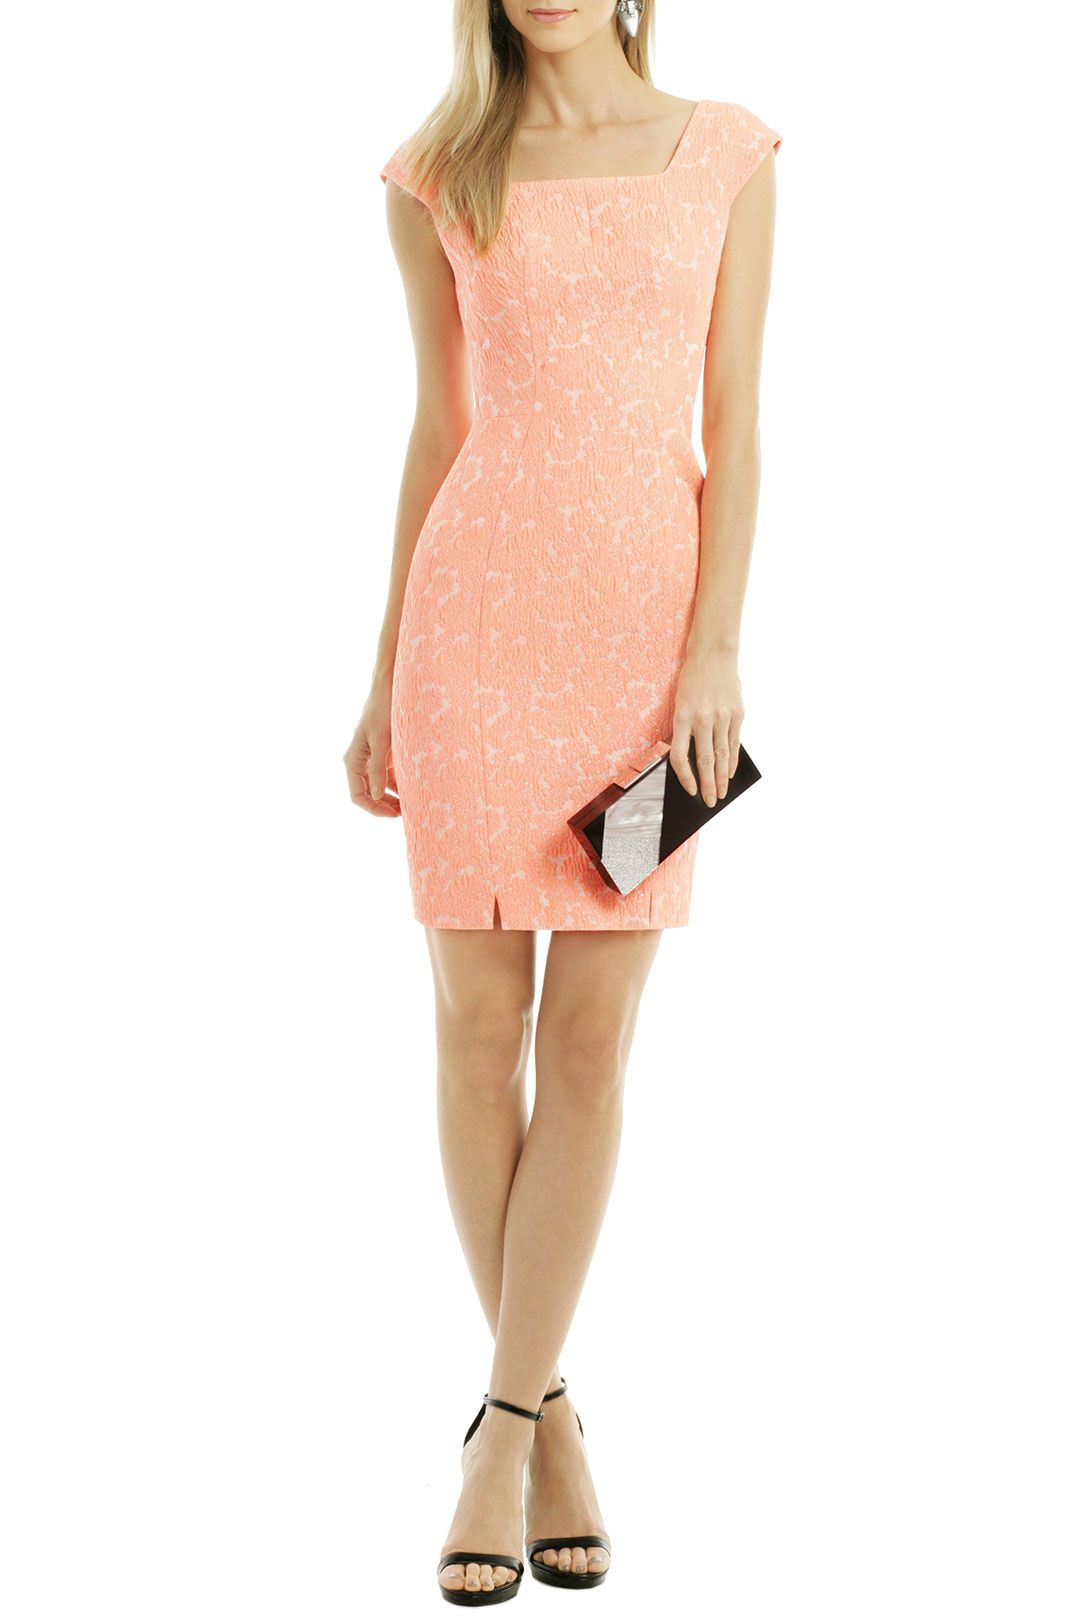 646c5f72b2b Buy Sunkiss Glow Sheath by Yoana Baraschi for  71 from Rent the Runway.  Cute Coral Dresses ...